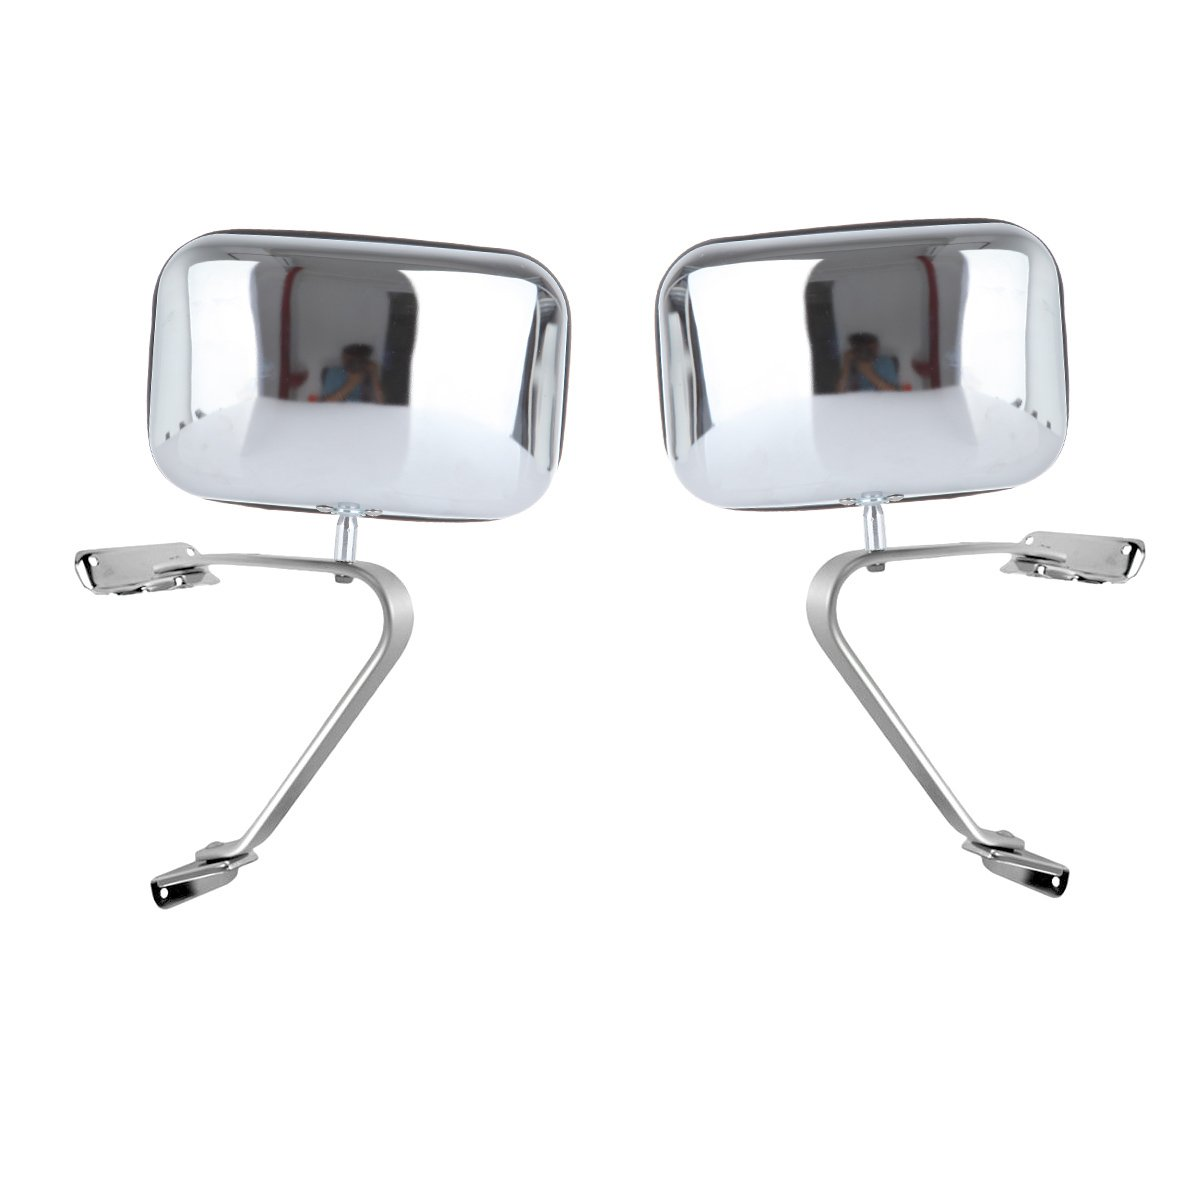 SCITOO Door Mirrors Chrome Replace Mirror Parts with Manually Operated Function fit 80-96 Ford Ranger Explorer F150 F250 F350 F450 Bronco Comes with Driver or Passenger Side Mirror